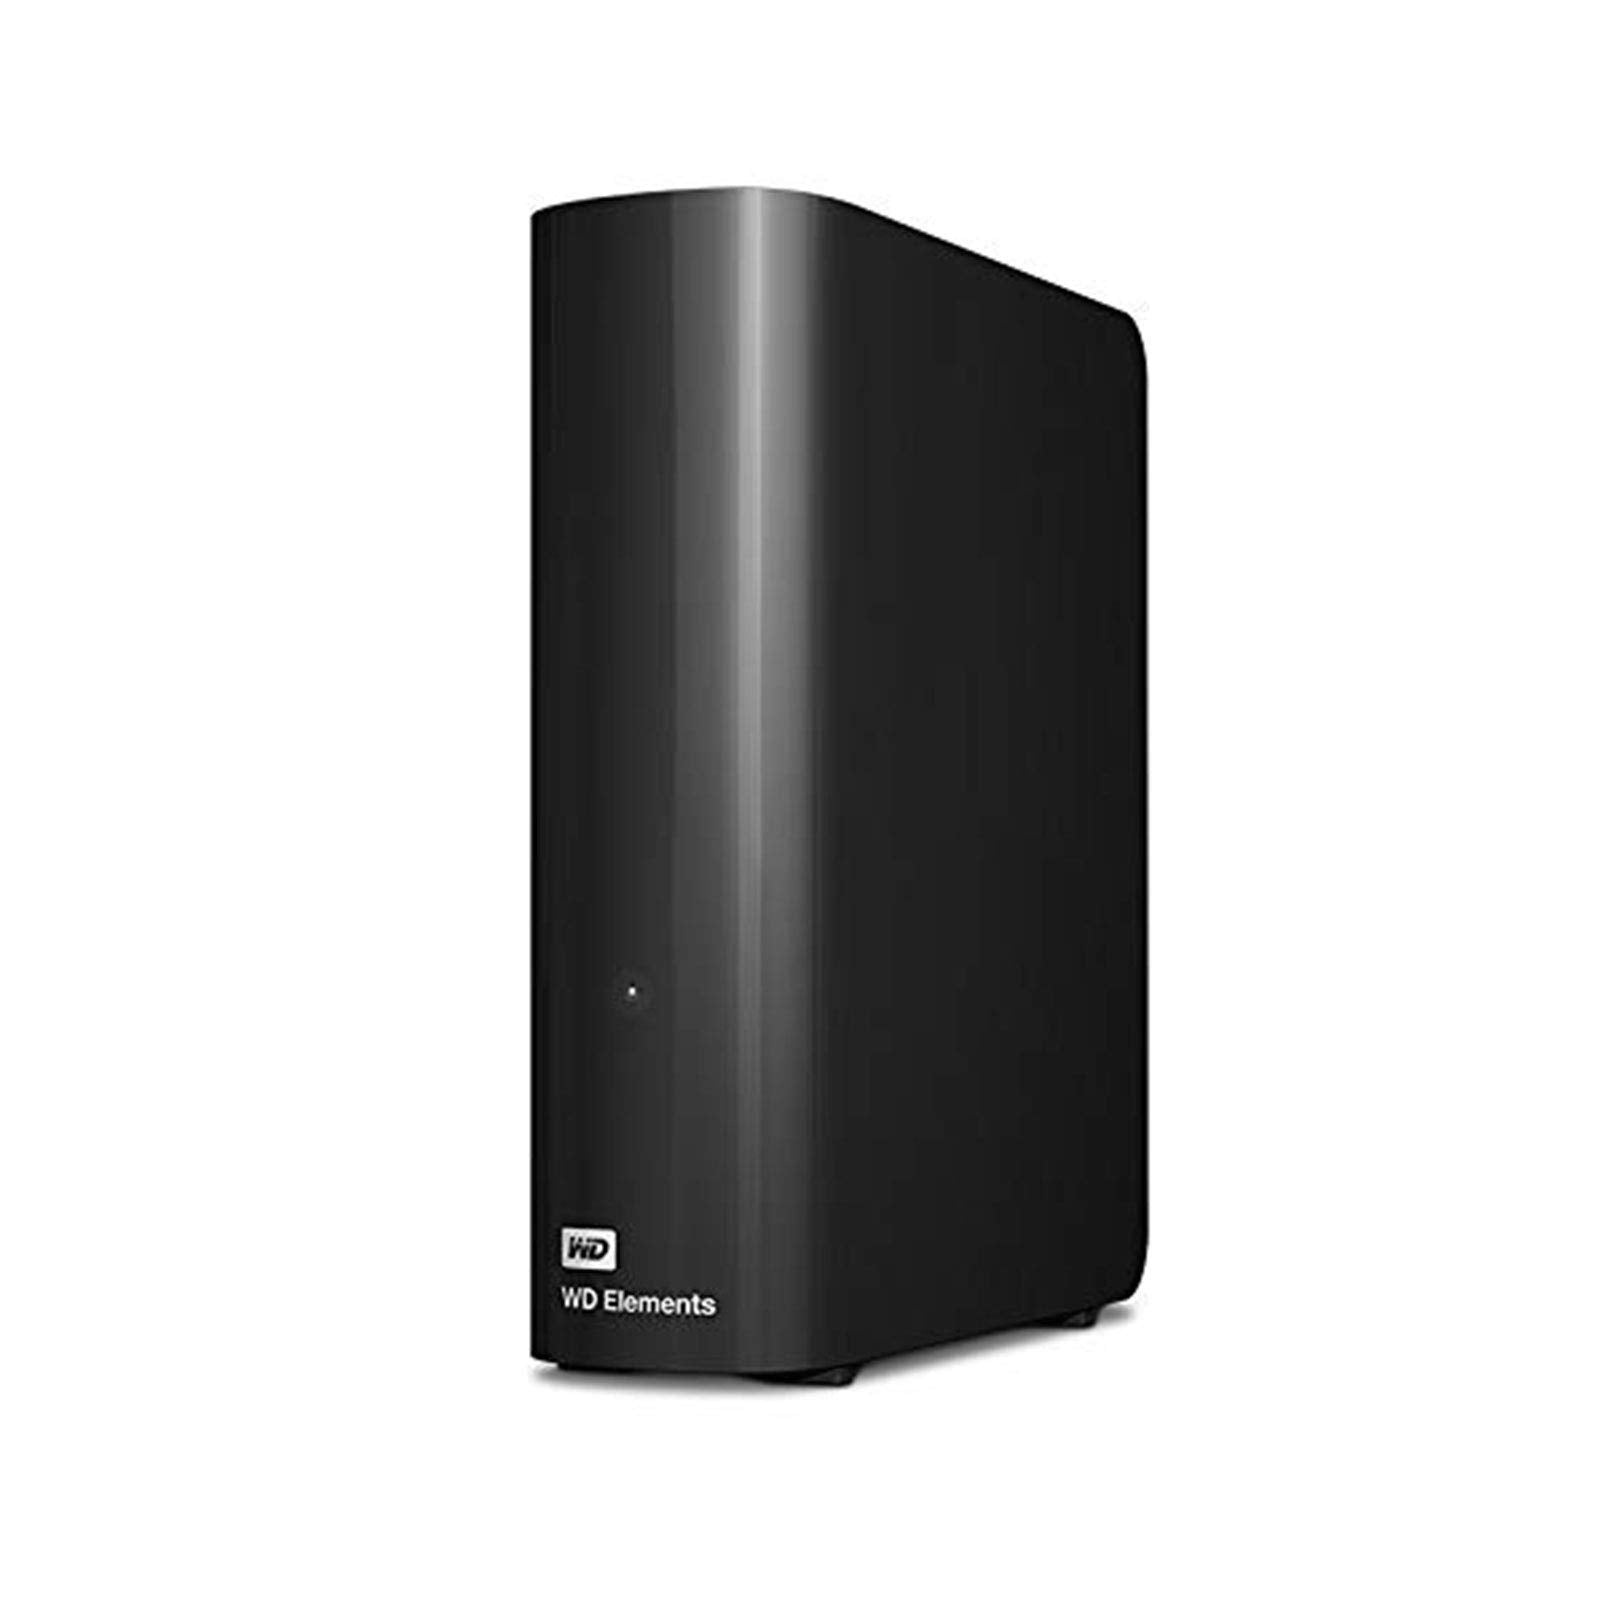 WD 14 TB Elements Desktop External Hard Drive - USB 3.0 - yrGear